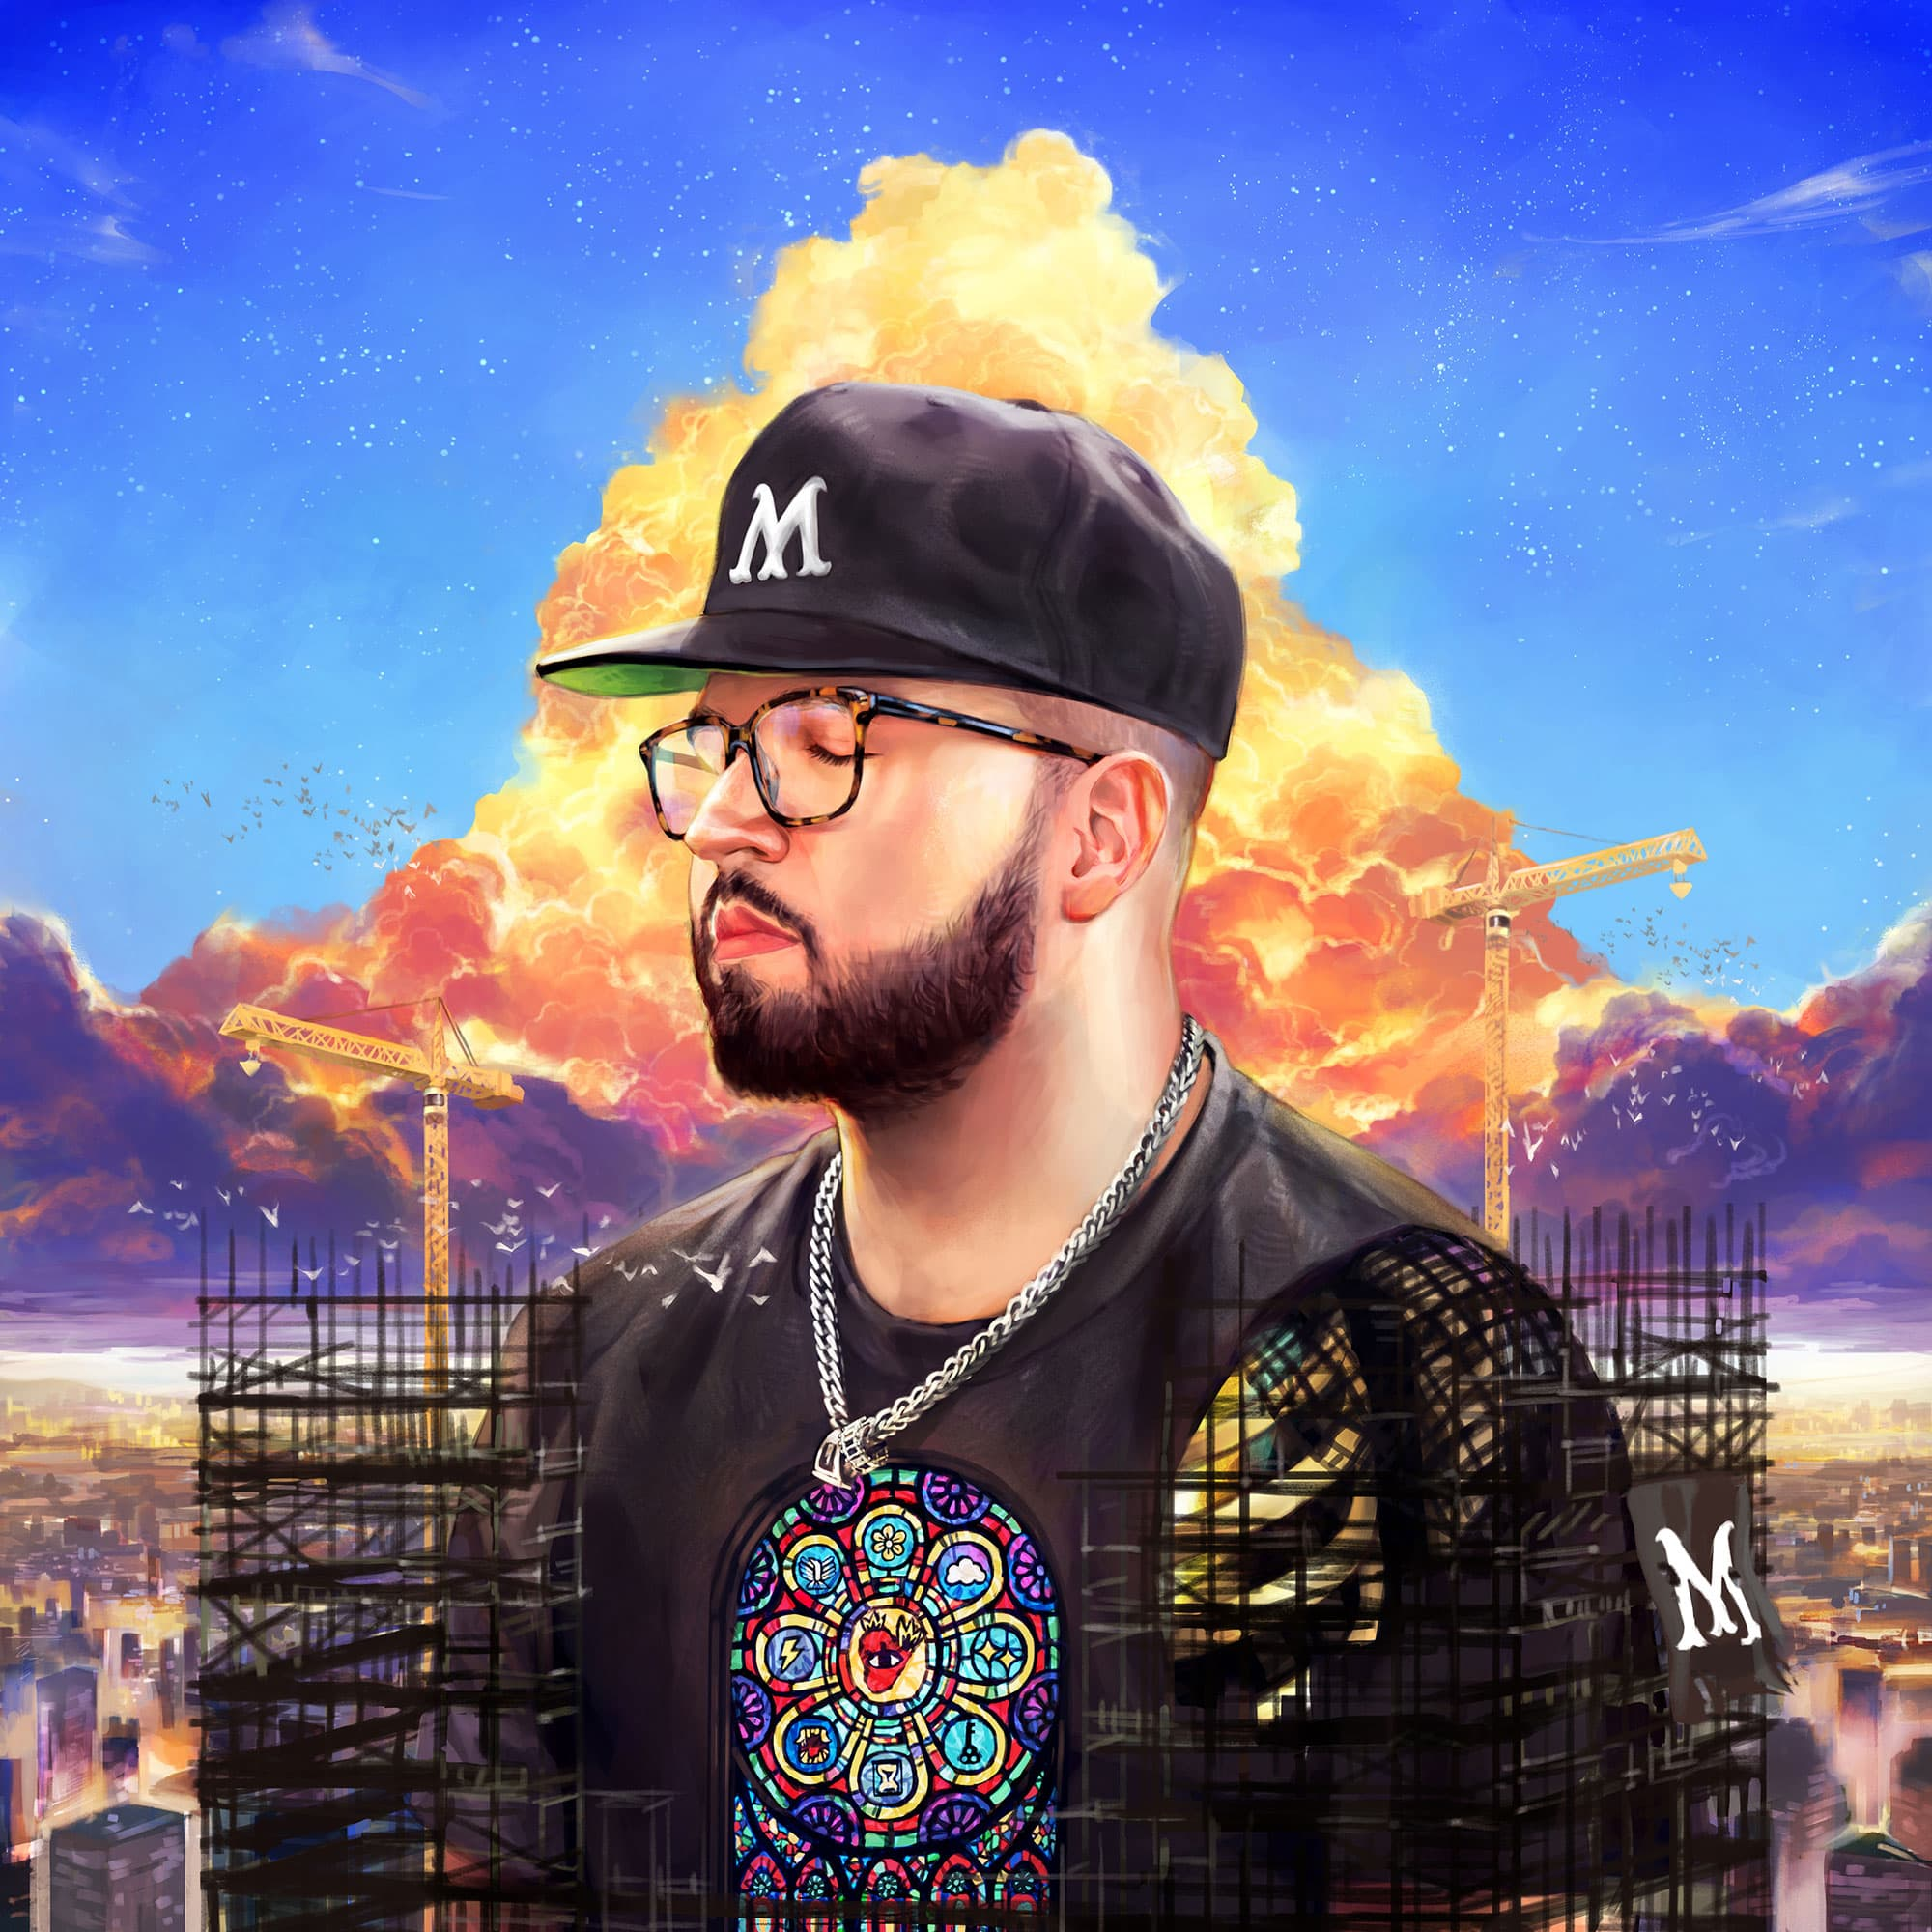 Andy Mineo 'Work In Progress' MP3 Digital Download